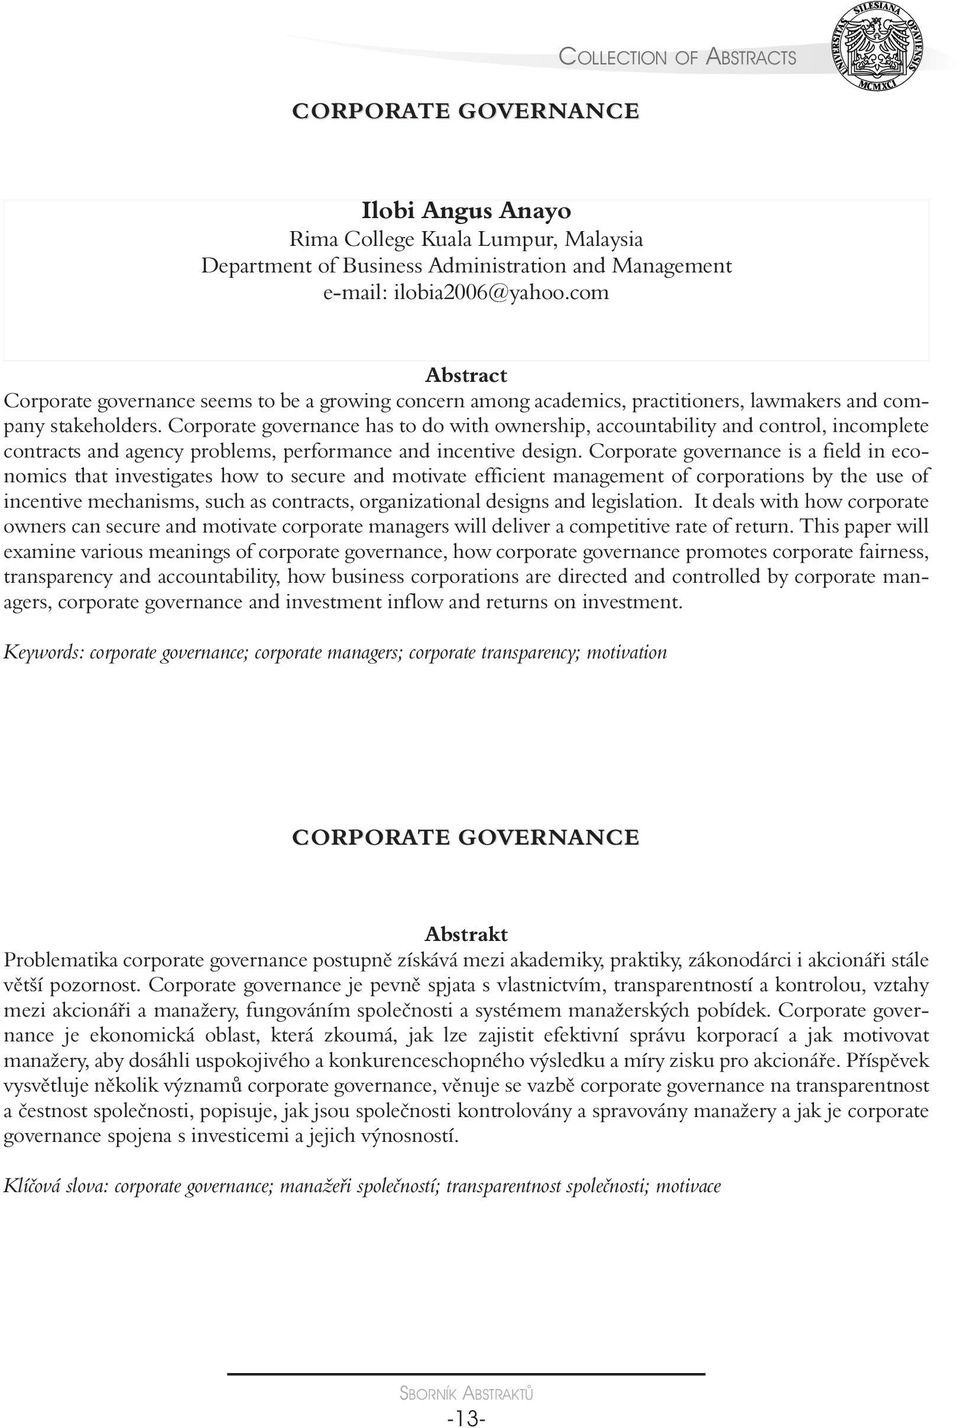 Corporate governance has to do with ownership, accountability and control, incomplete contracts and agency problems, performance and incentive design.